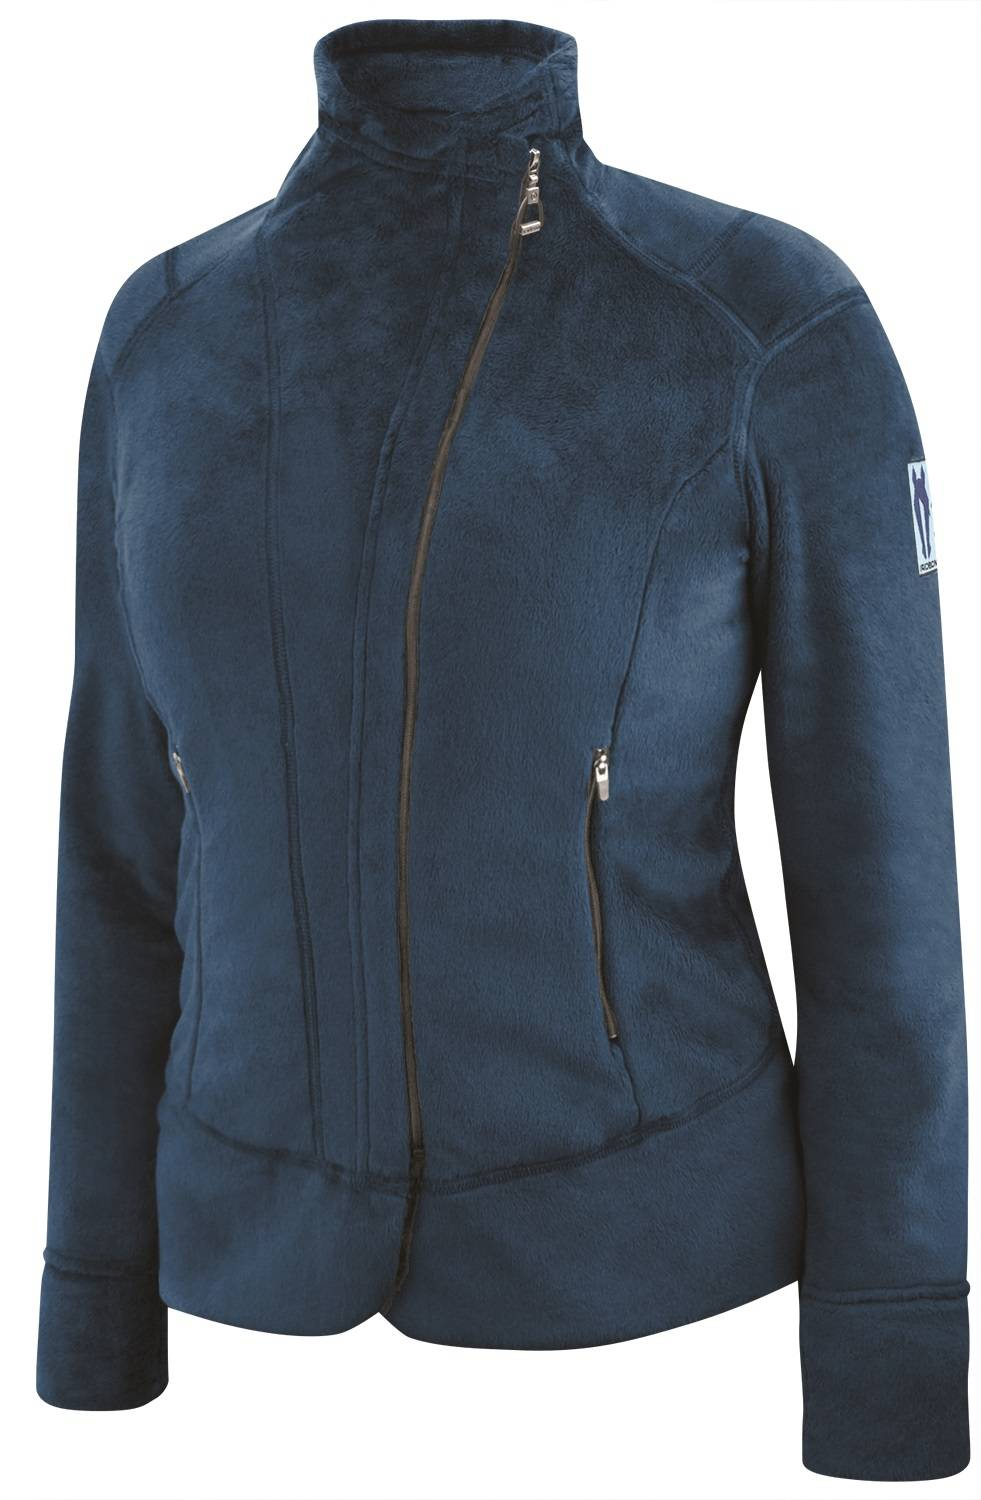 Irideon Ladies Icelandic Jacket